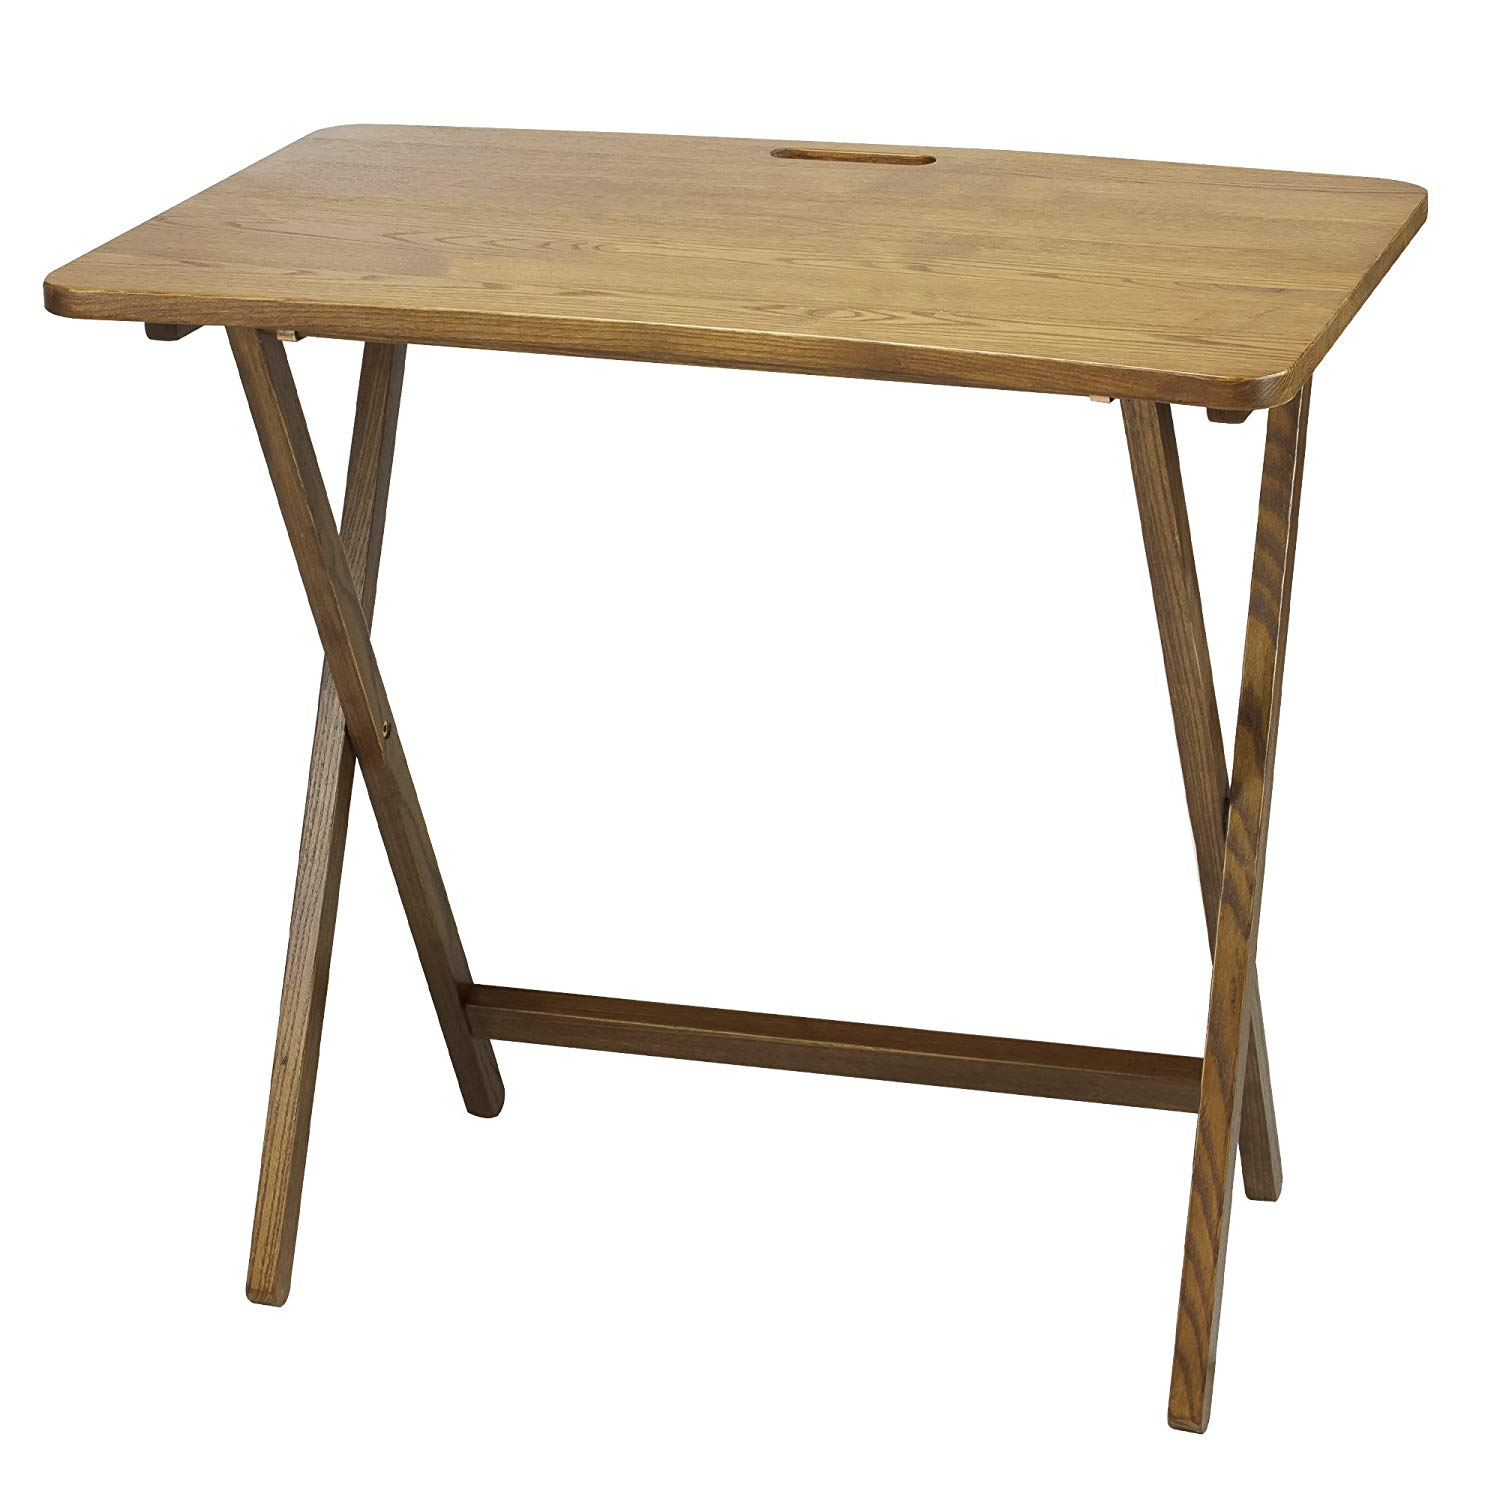 Get Quotations · Goosefoot Red Oak Folding TV Tray Table Table Tv Folding  Tray Bed Serving Breakfast Wood Laptop